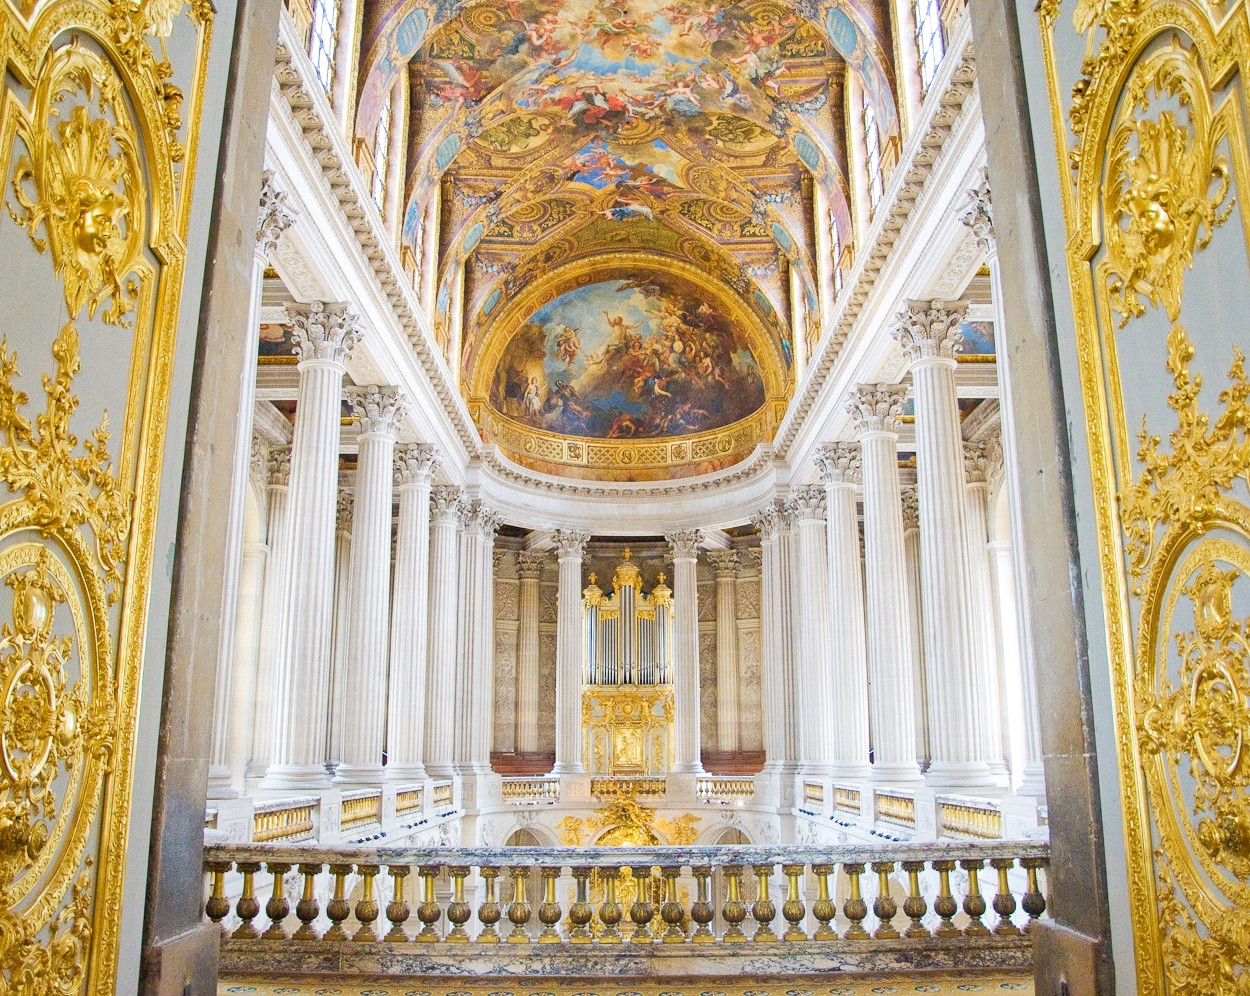 Chapel in Palace of versailles. Credit Thibault Chappe